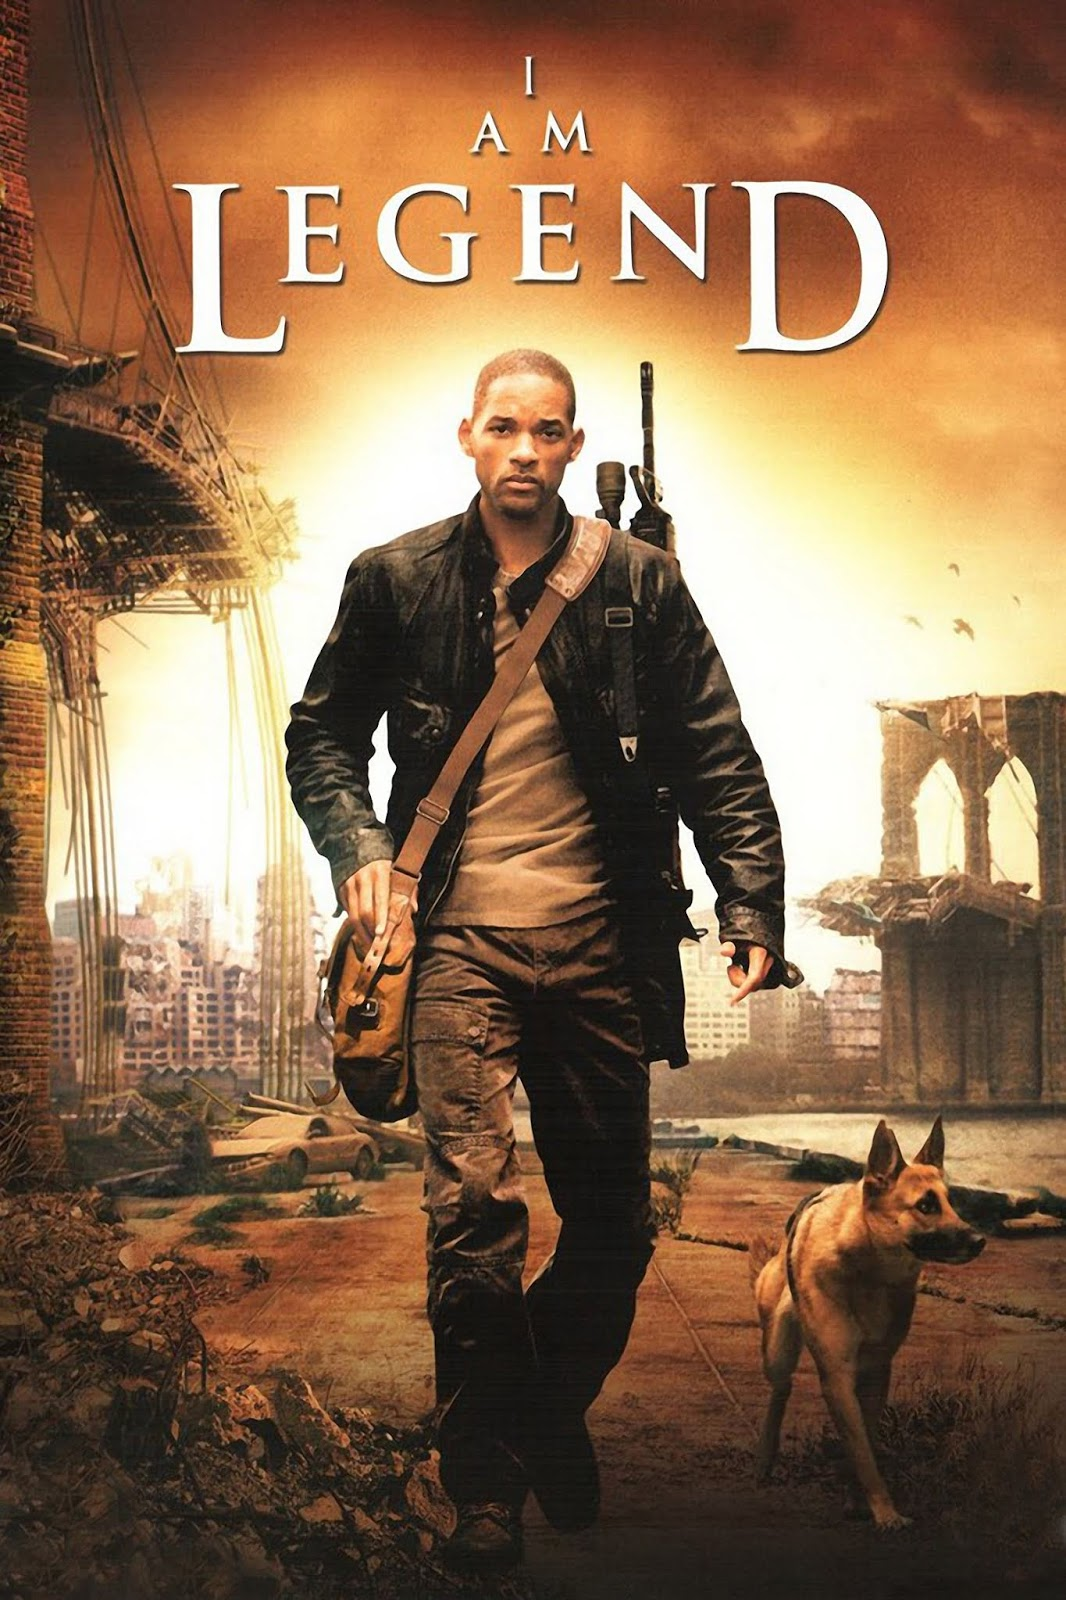 I AM LEGEND (2007) TAMIL DUBBED HD